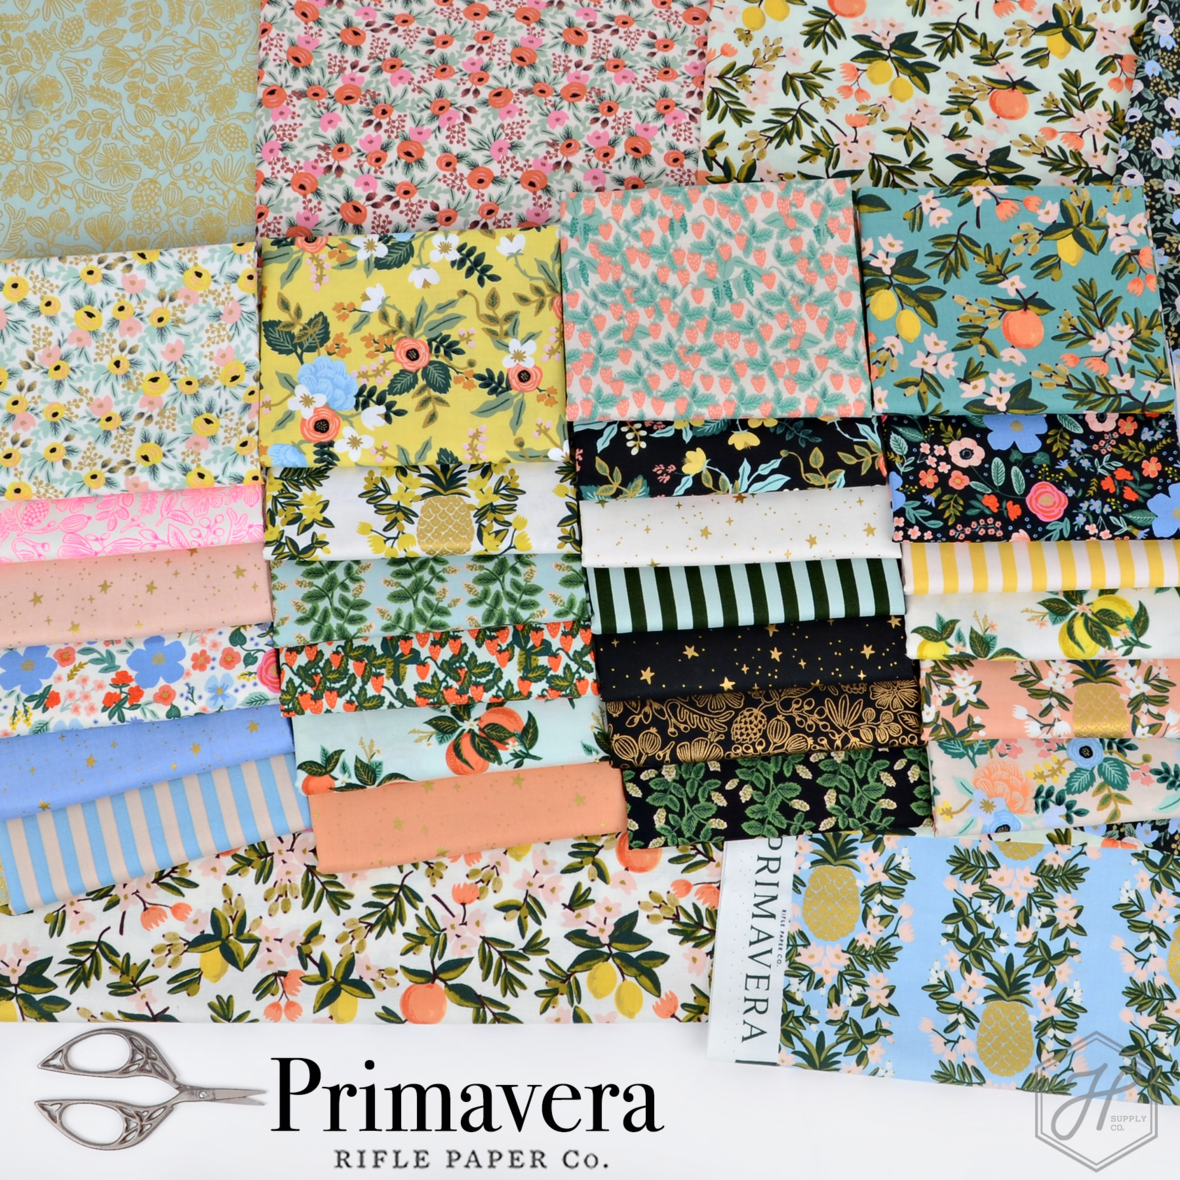 Primavera Fabric Poster Rifle Paper co at Hawthorne Supply Co